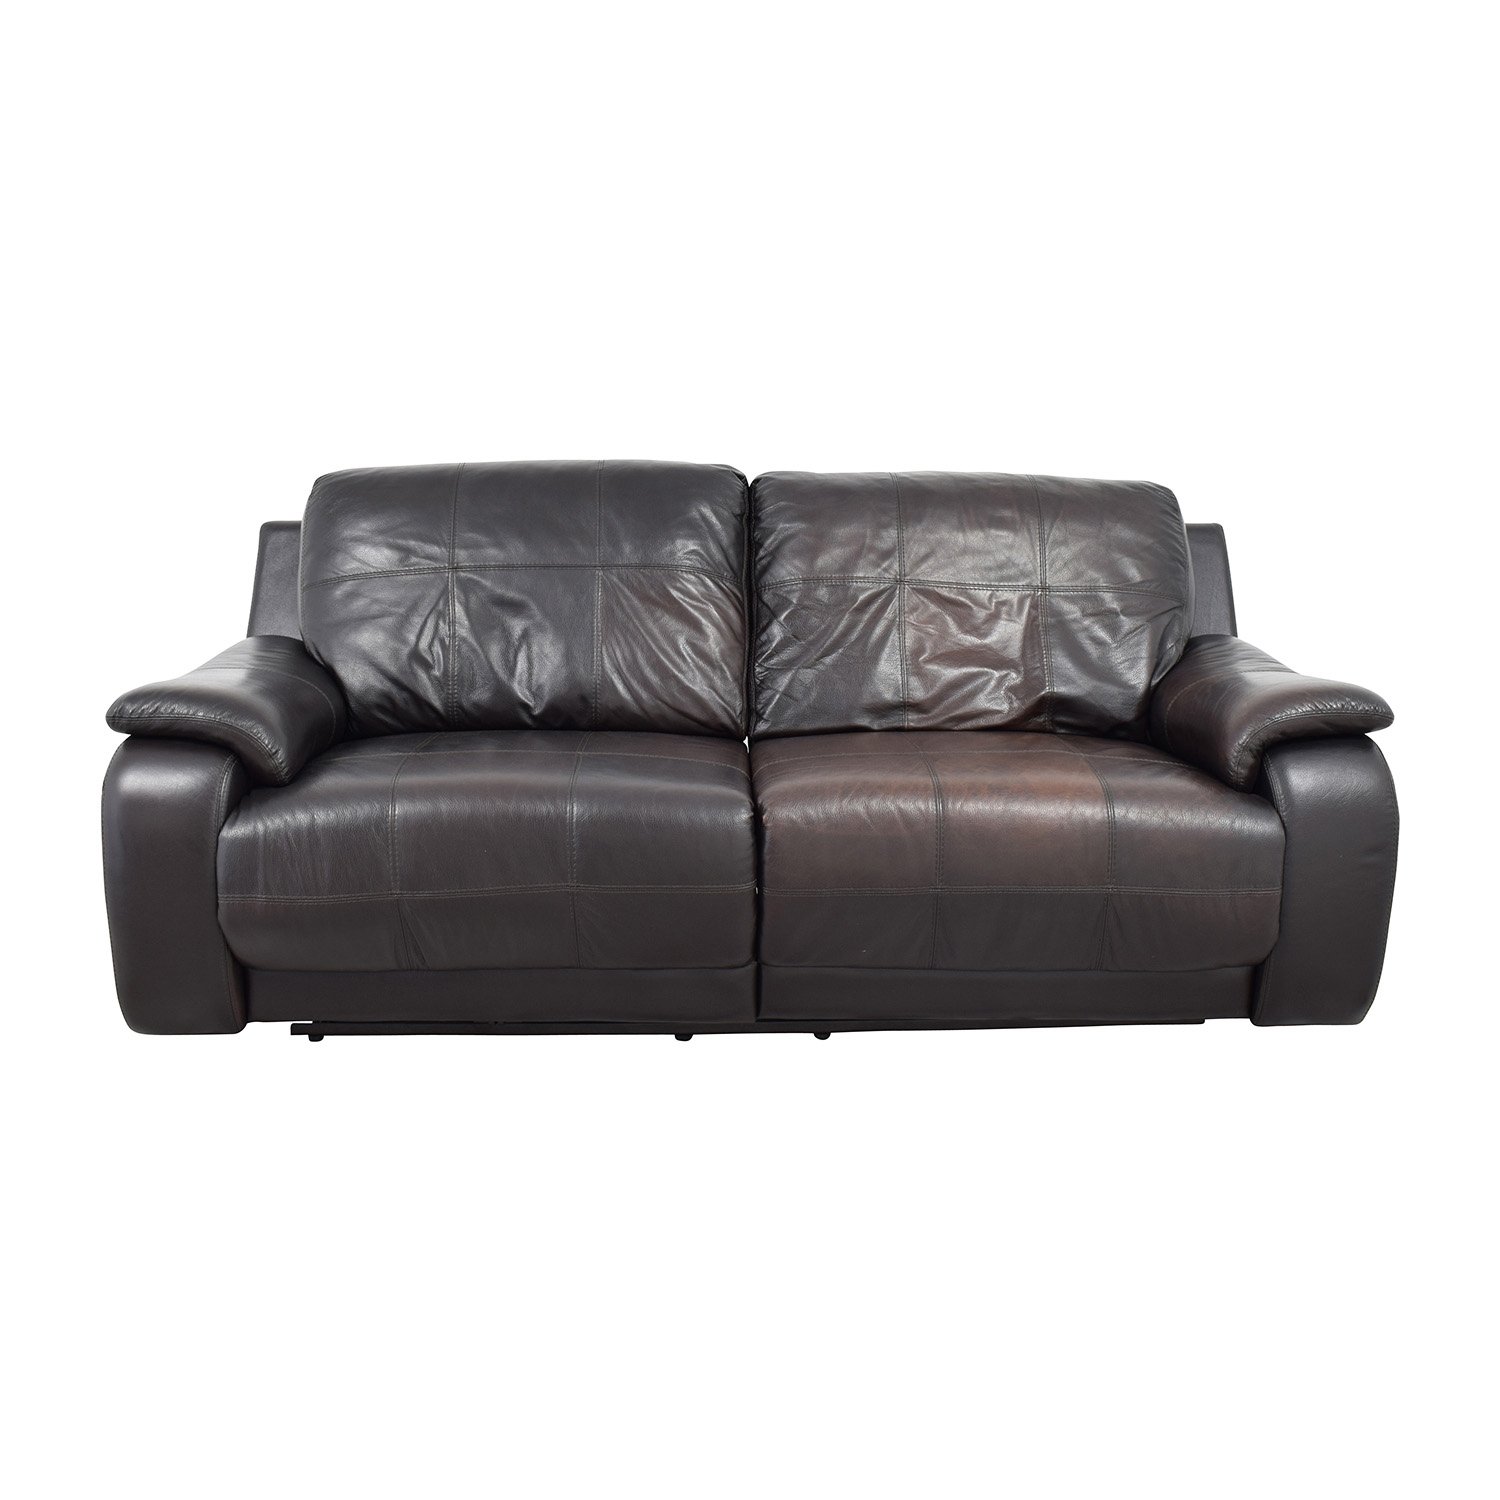 Raymour and Flanigan Raymour and Flanigan Espresso Leather Power Recliner Sofa coupon